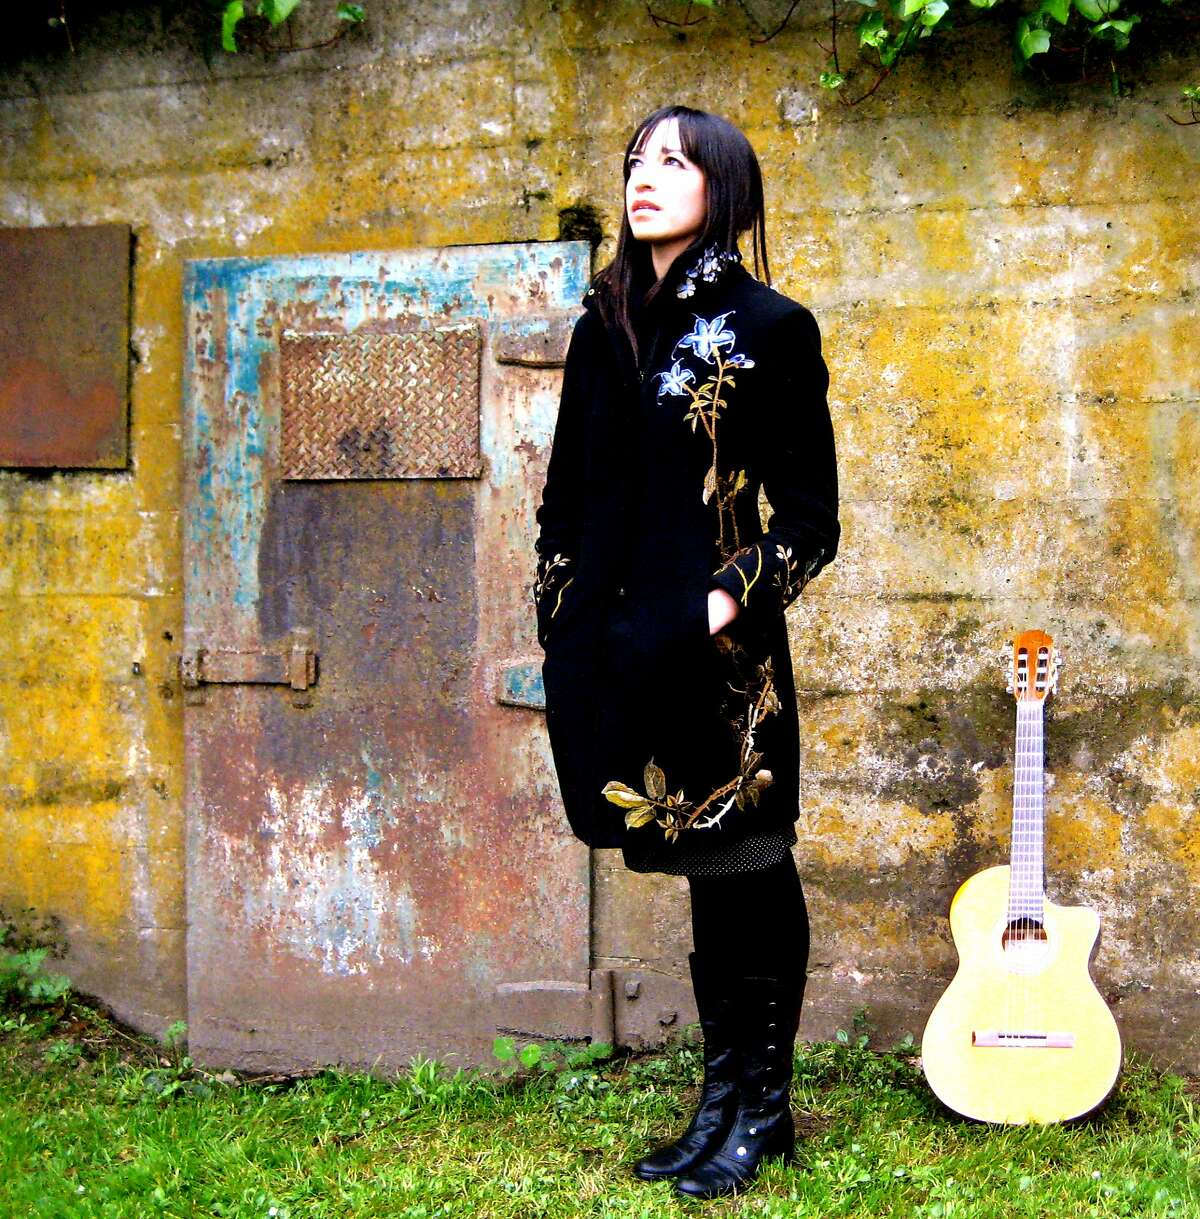 �Transcending Borders,� a two-hour concert by local musician Diana Gameros with her band, takes place 4.25 at The Mission Cultural Center for Latino Arts